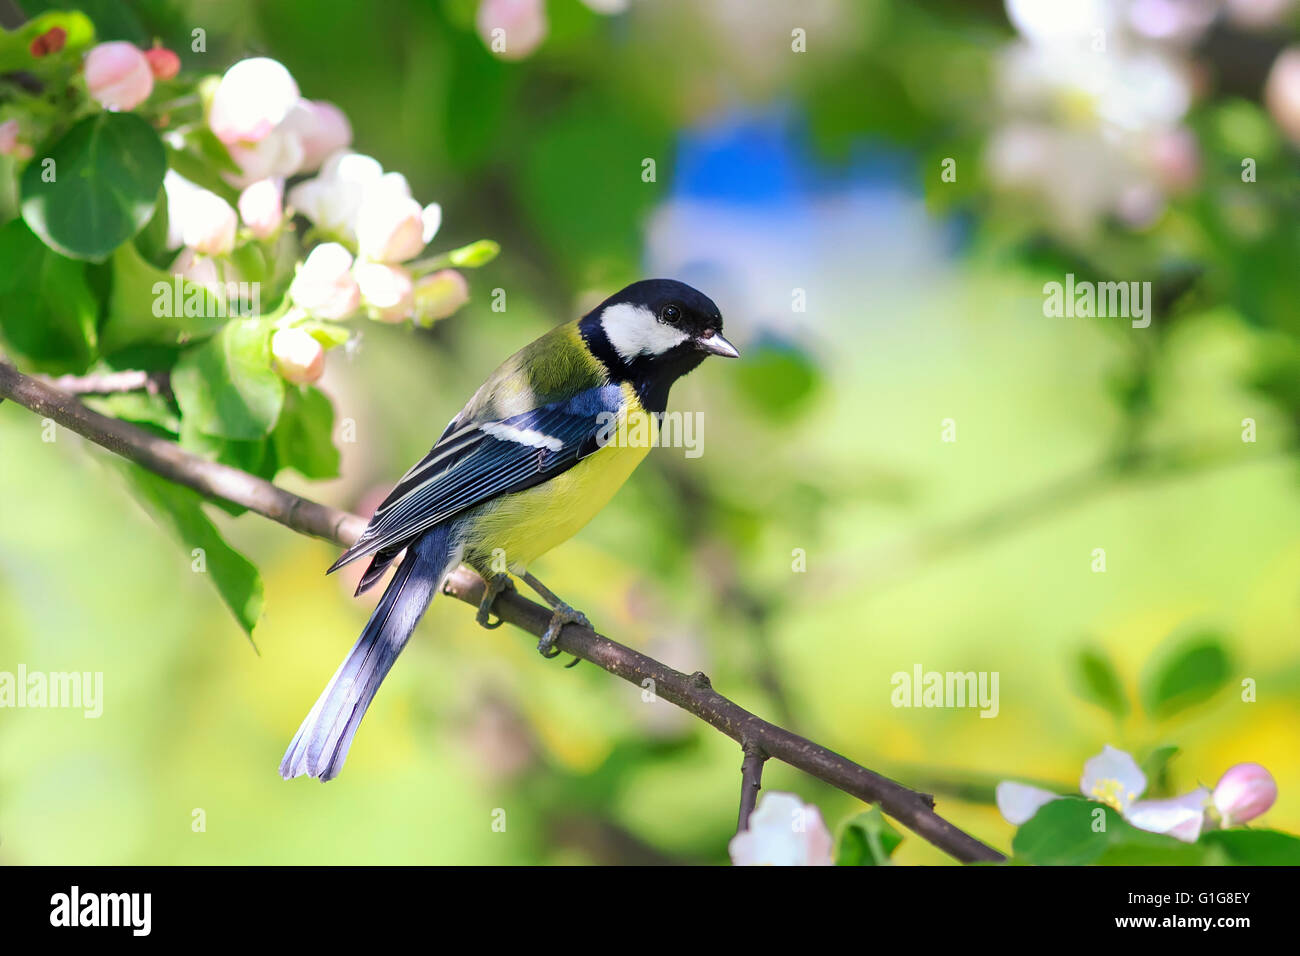 animal, background, beak, beautiful, beauty, bird, blossom, blue